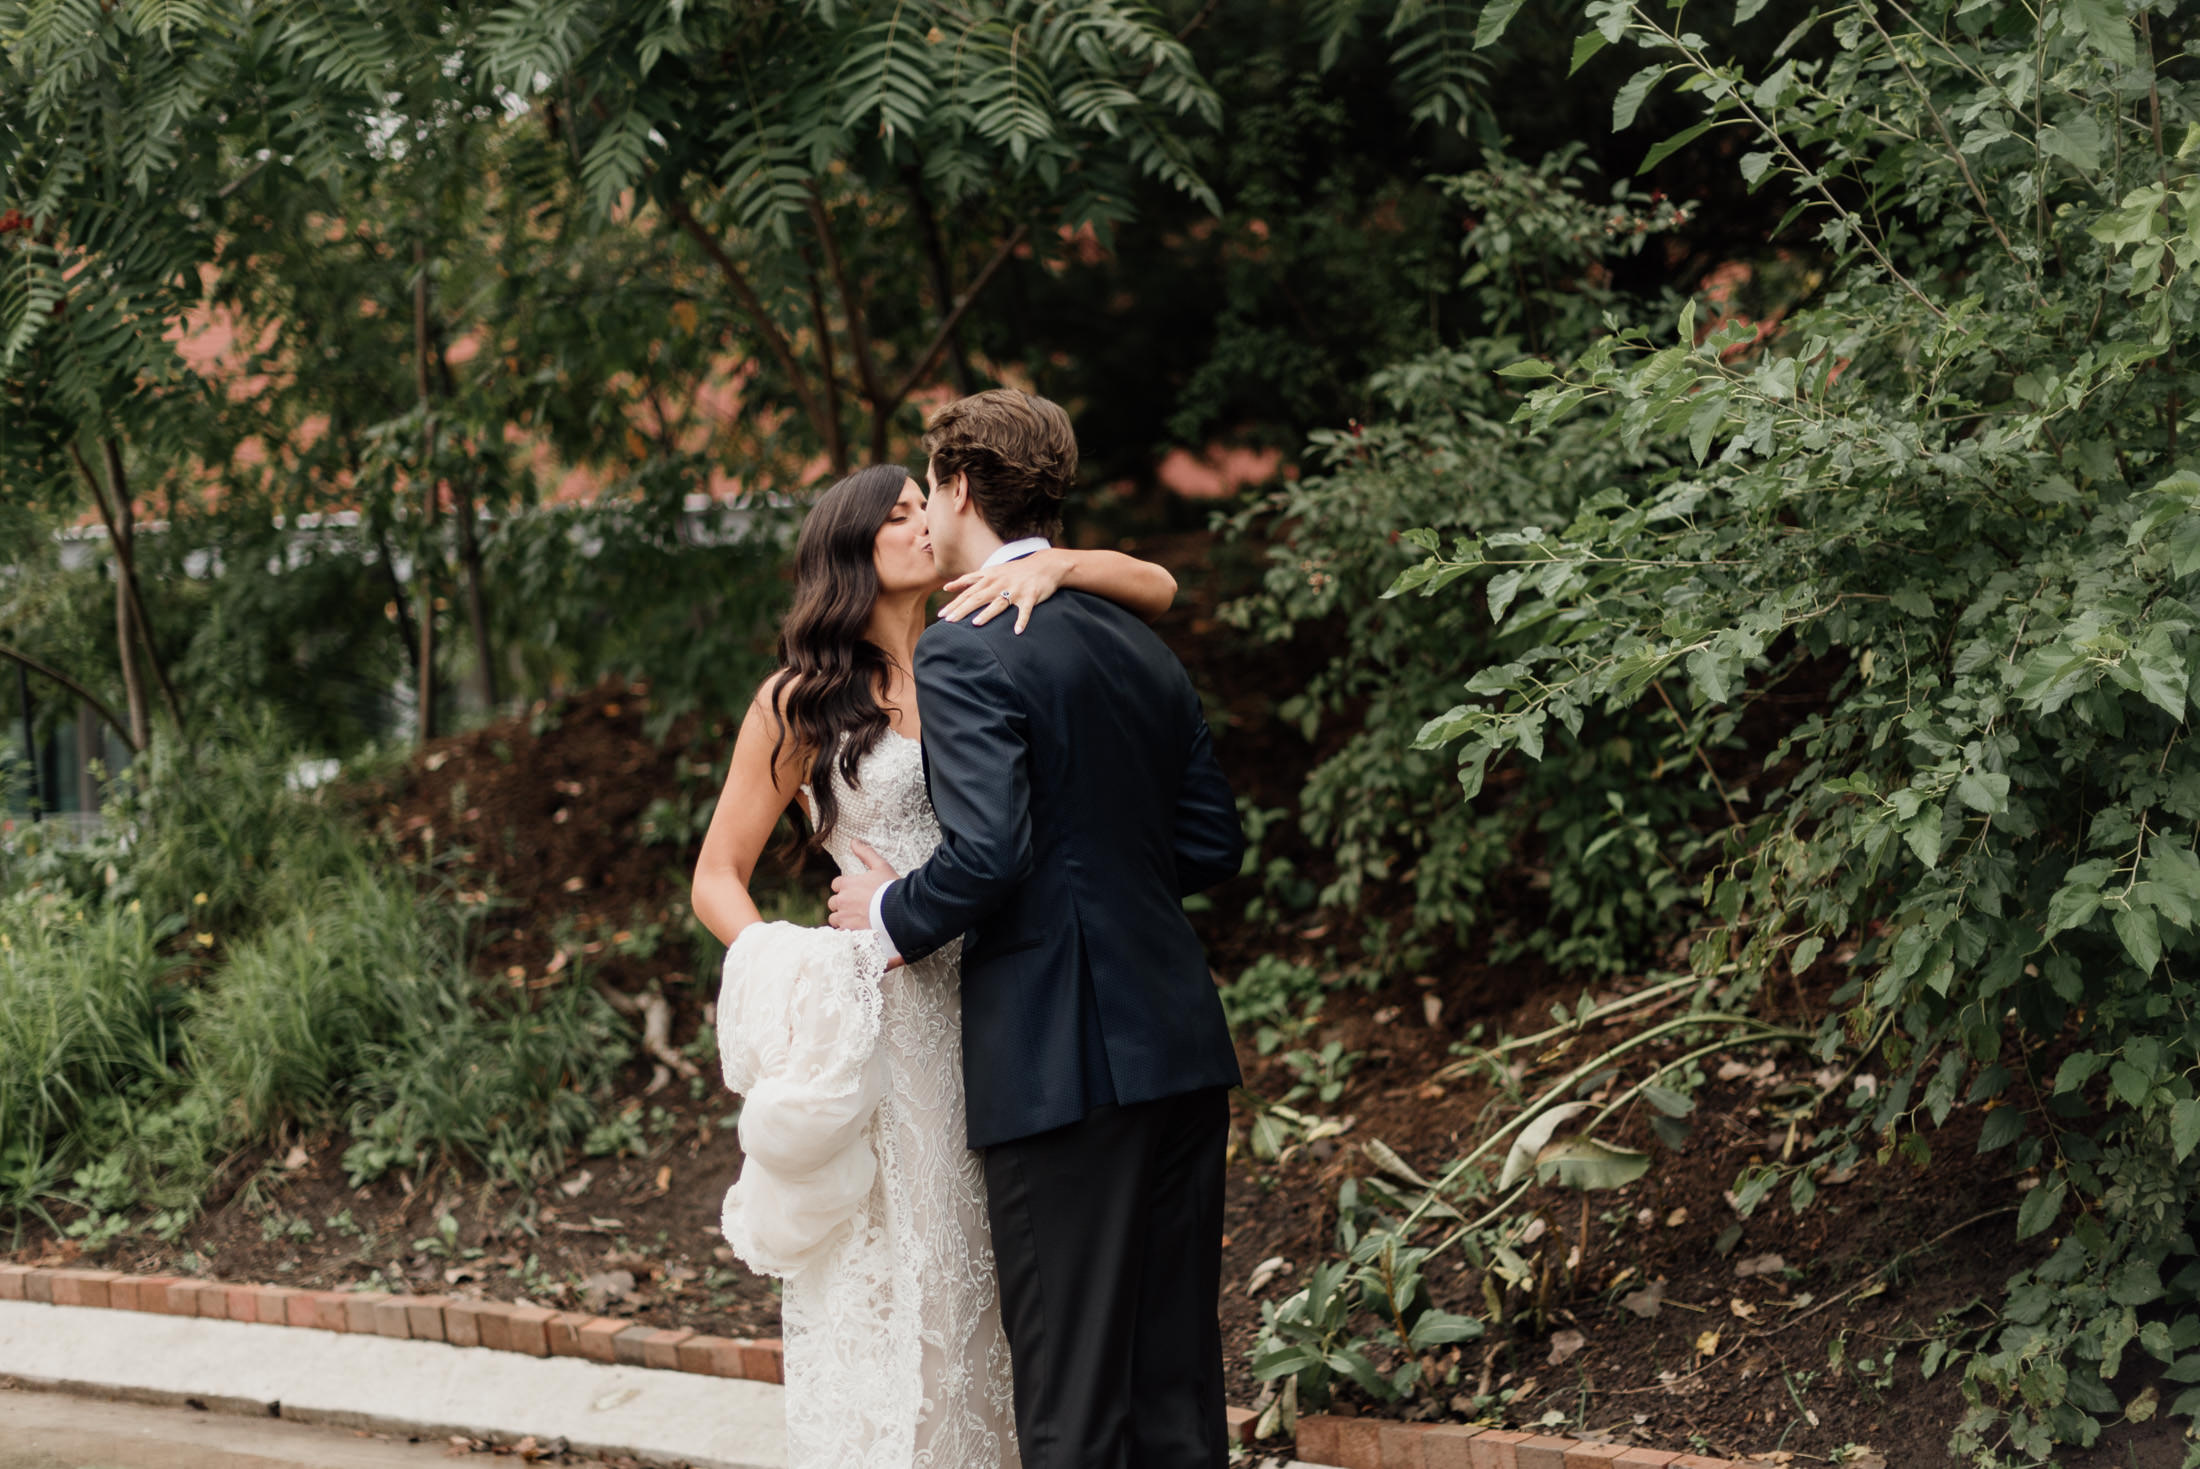 Evergreen Brickworks Wedding in Toronto